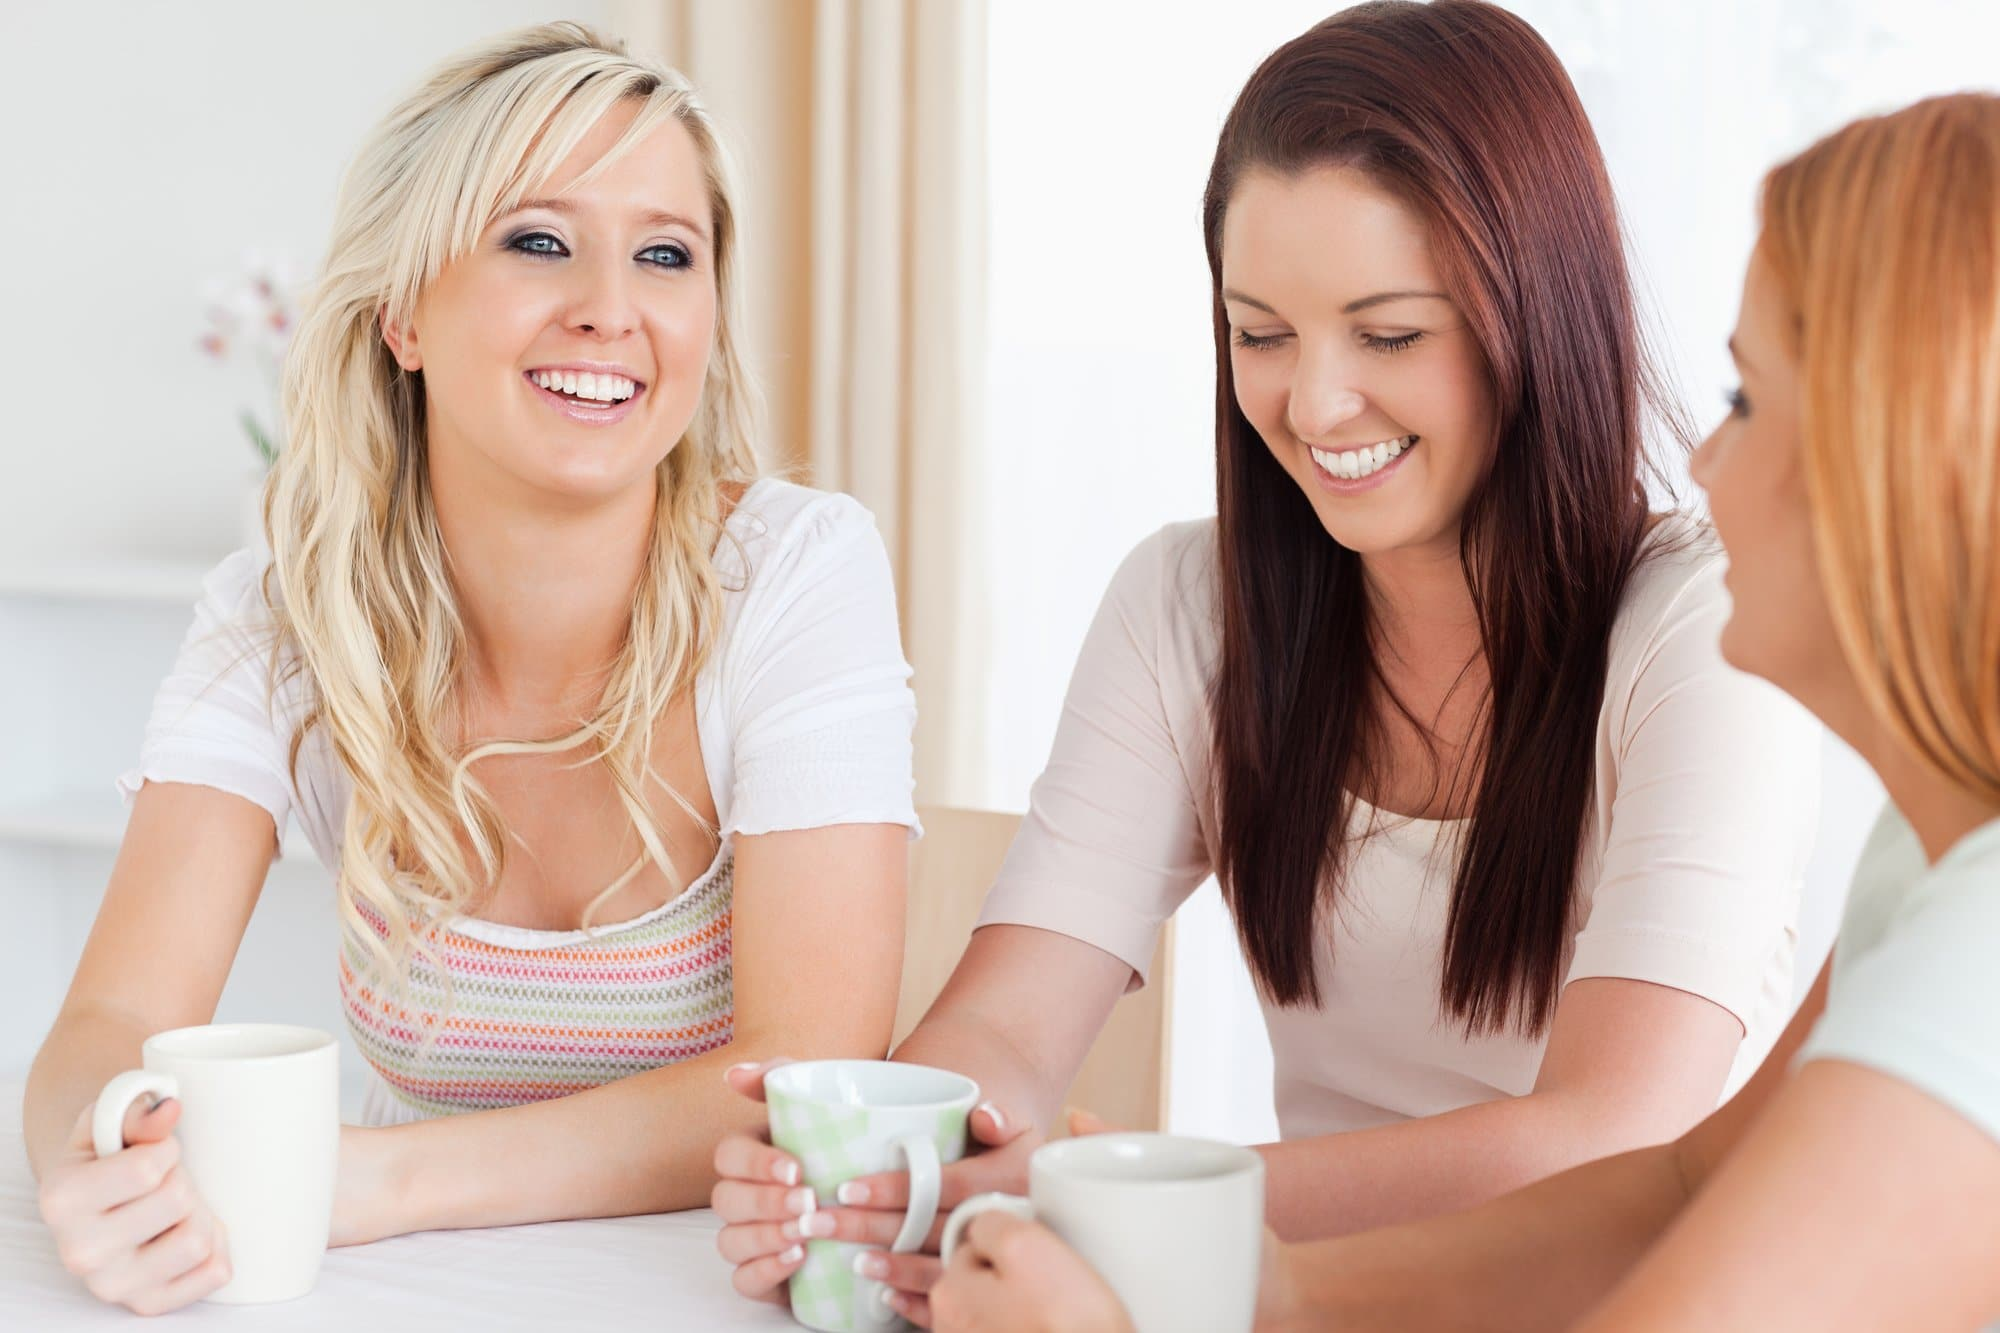 Supportive Housing for Women in Eating Disorder Recovery